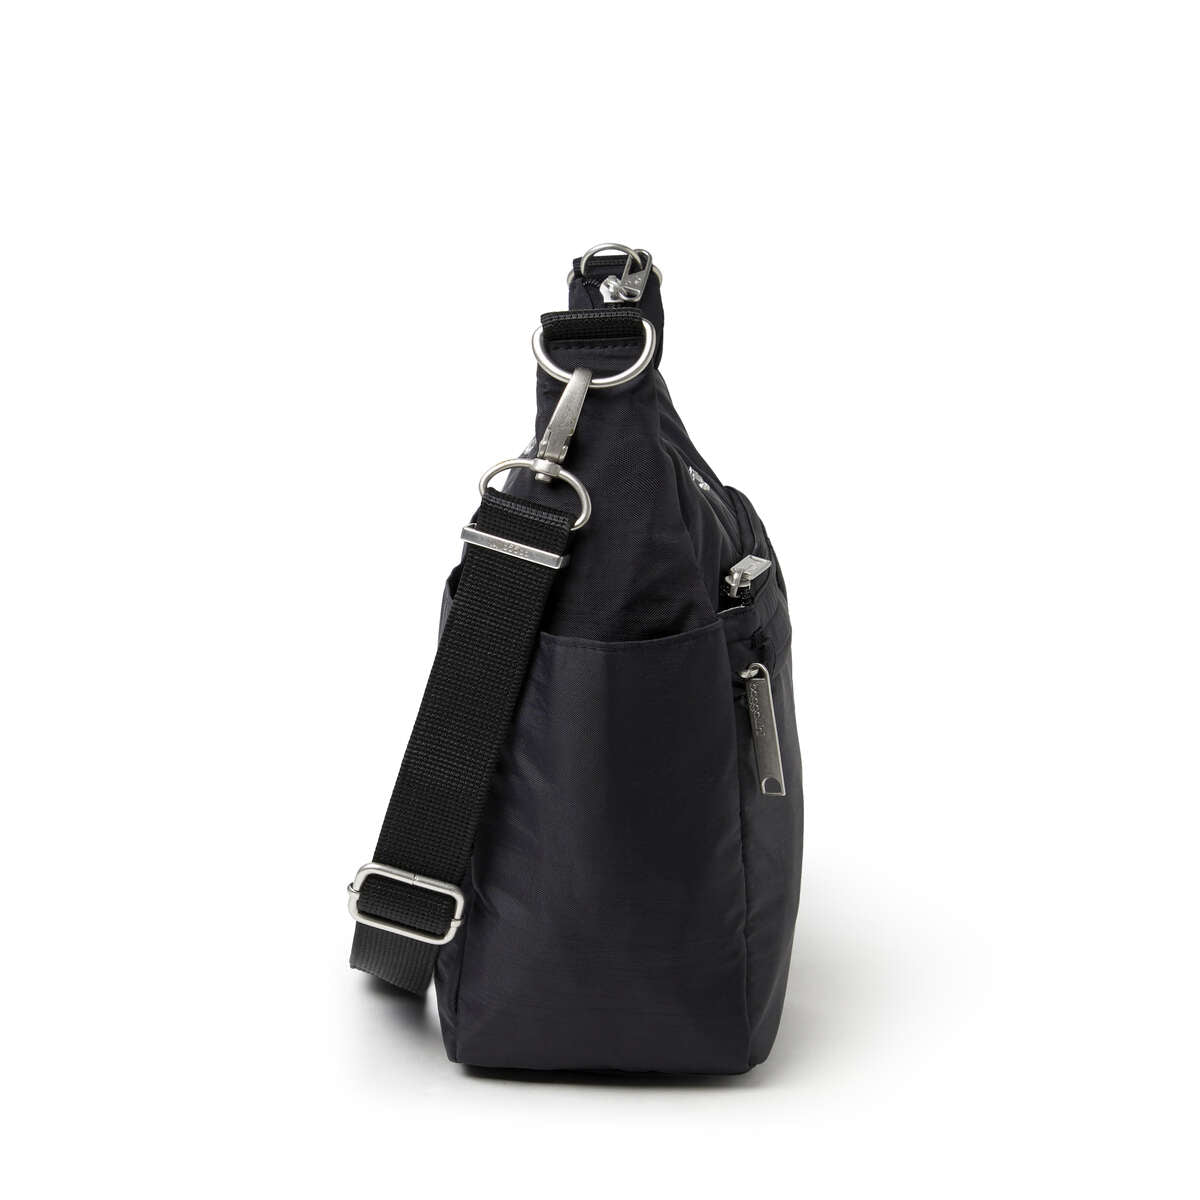 Baggallini Free Time Hobo Crossbody